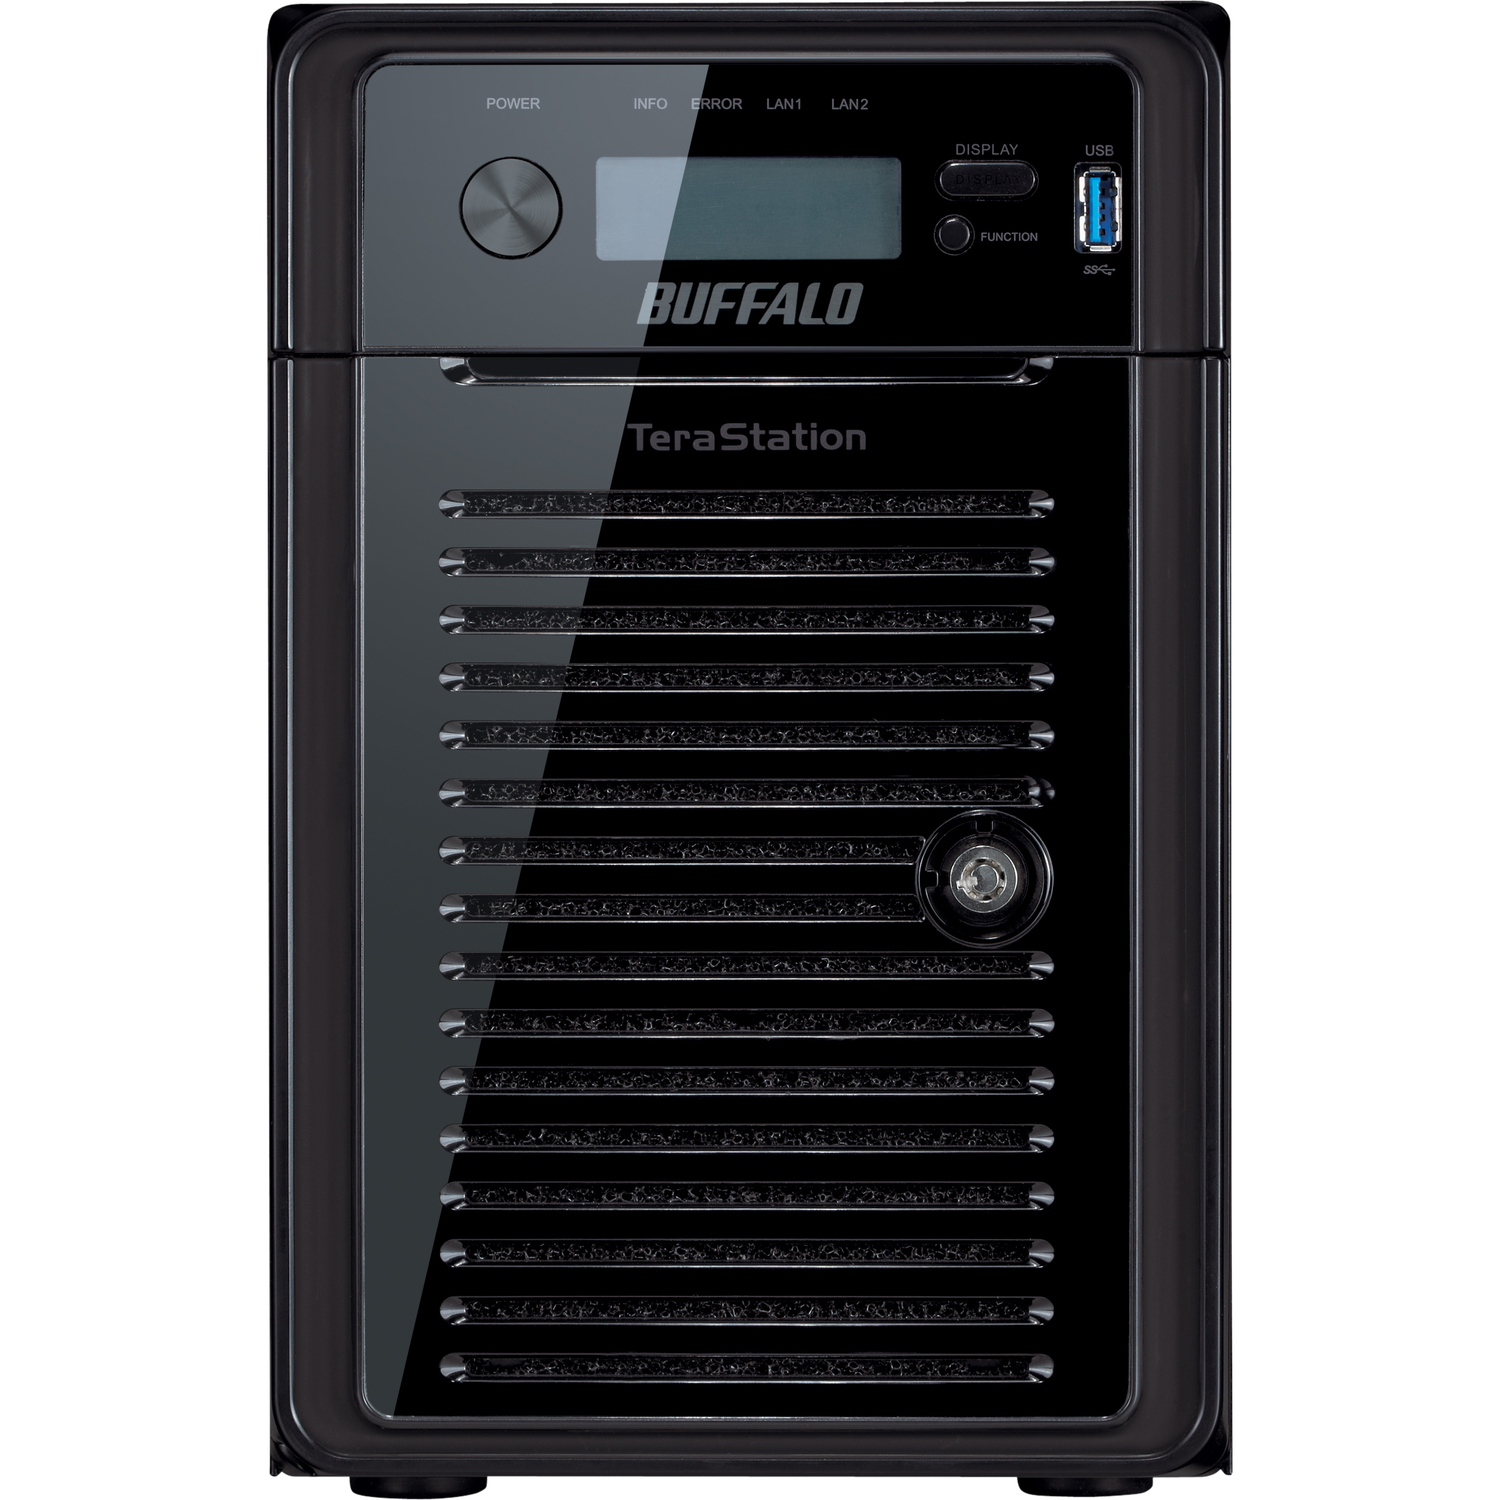 Buffalo TeraStation WS5600D2406 6 x Total Bays Network Storage Server - 1 x Intel Atom D2700 Dual-core 2 Core 2.13 GHz - 24 TB HDD 6 x 4 TB - RAID Supported 0, 1